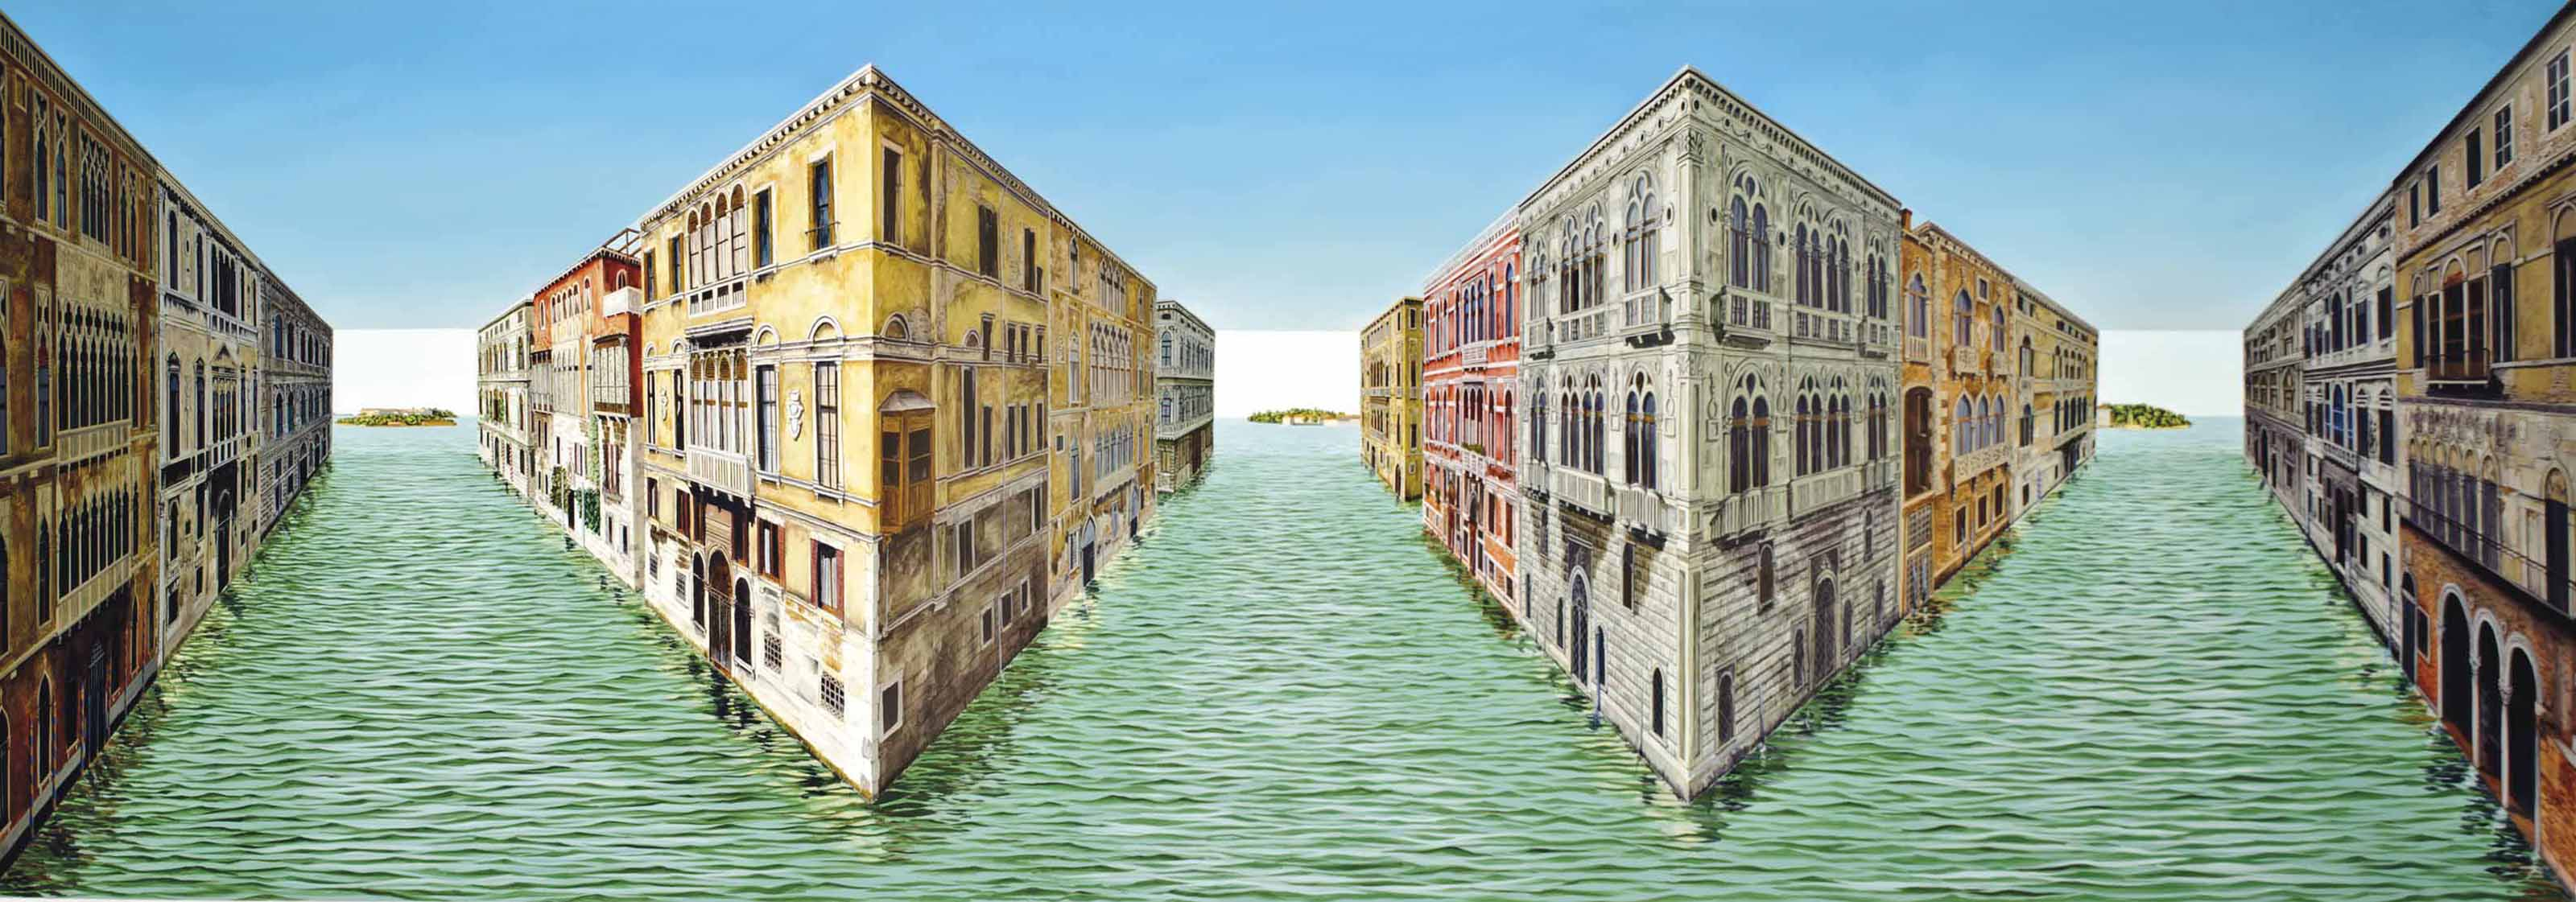 For the Venice Biennale